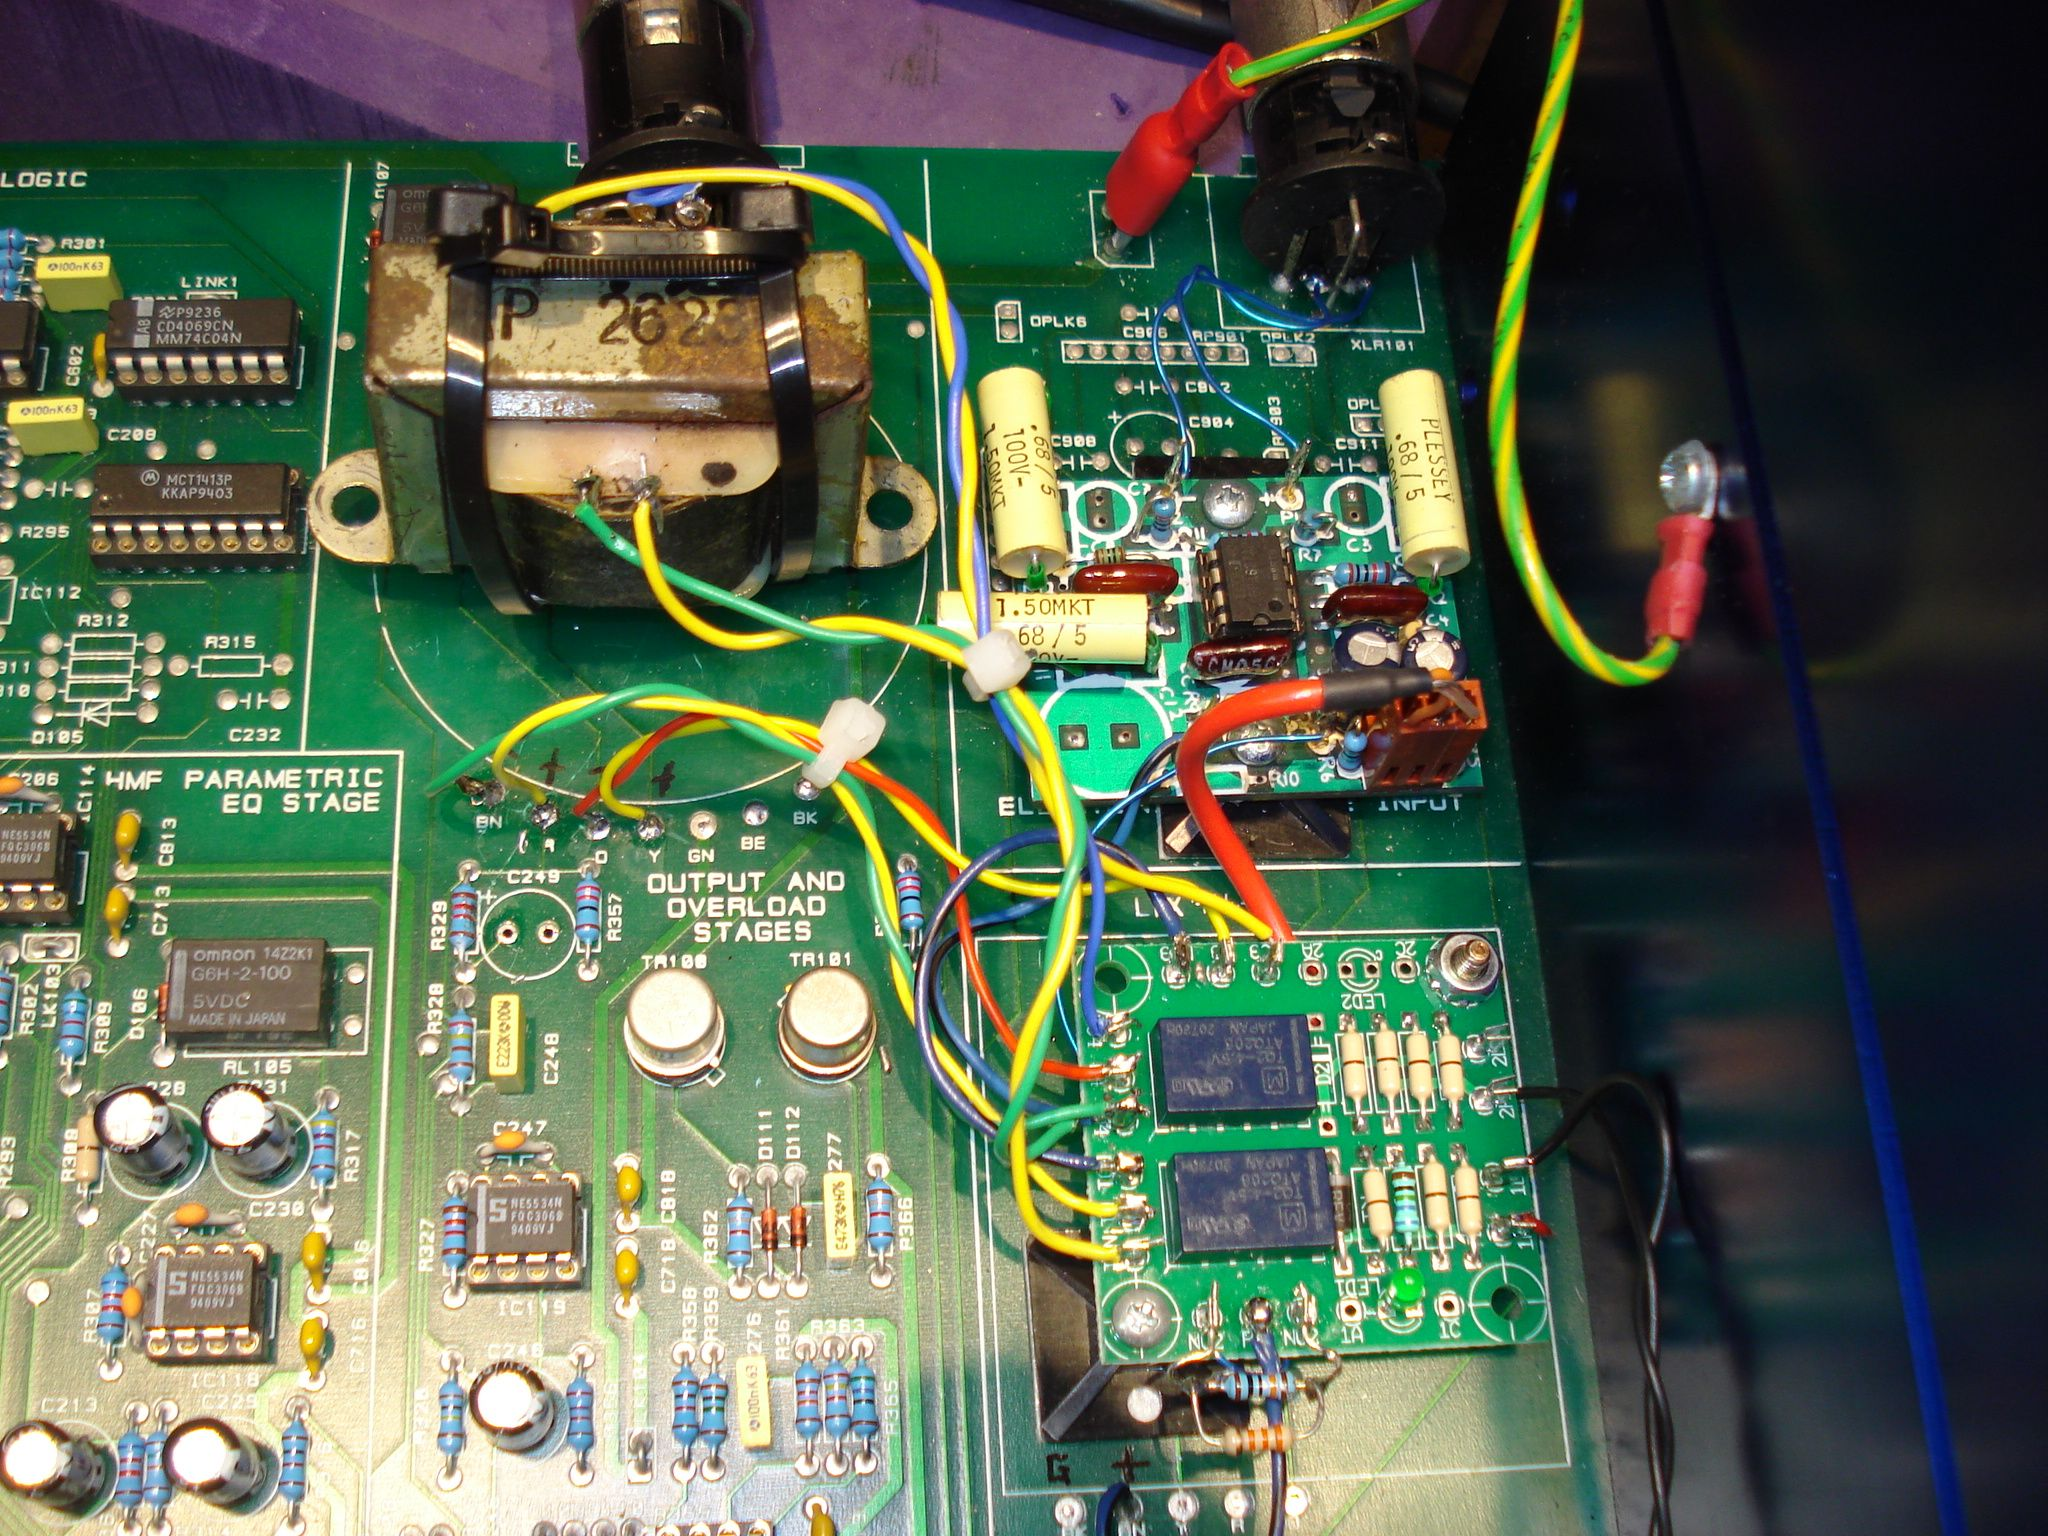 Close up showing changes to input and output circuit and I/O bypass relays